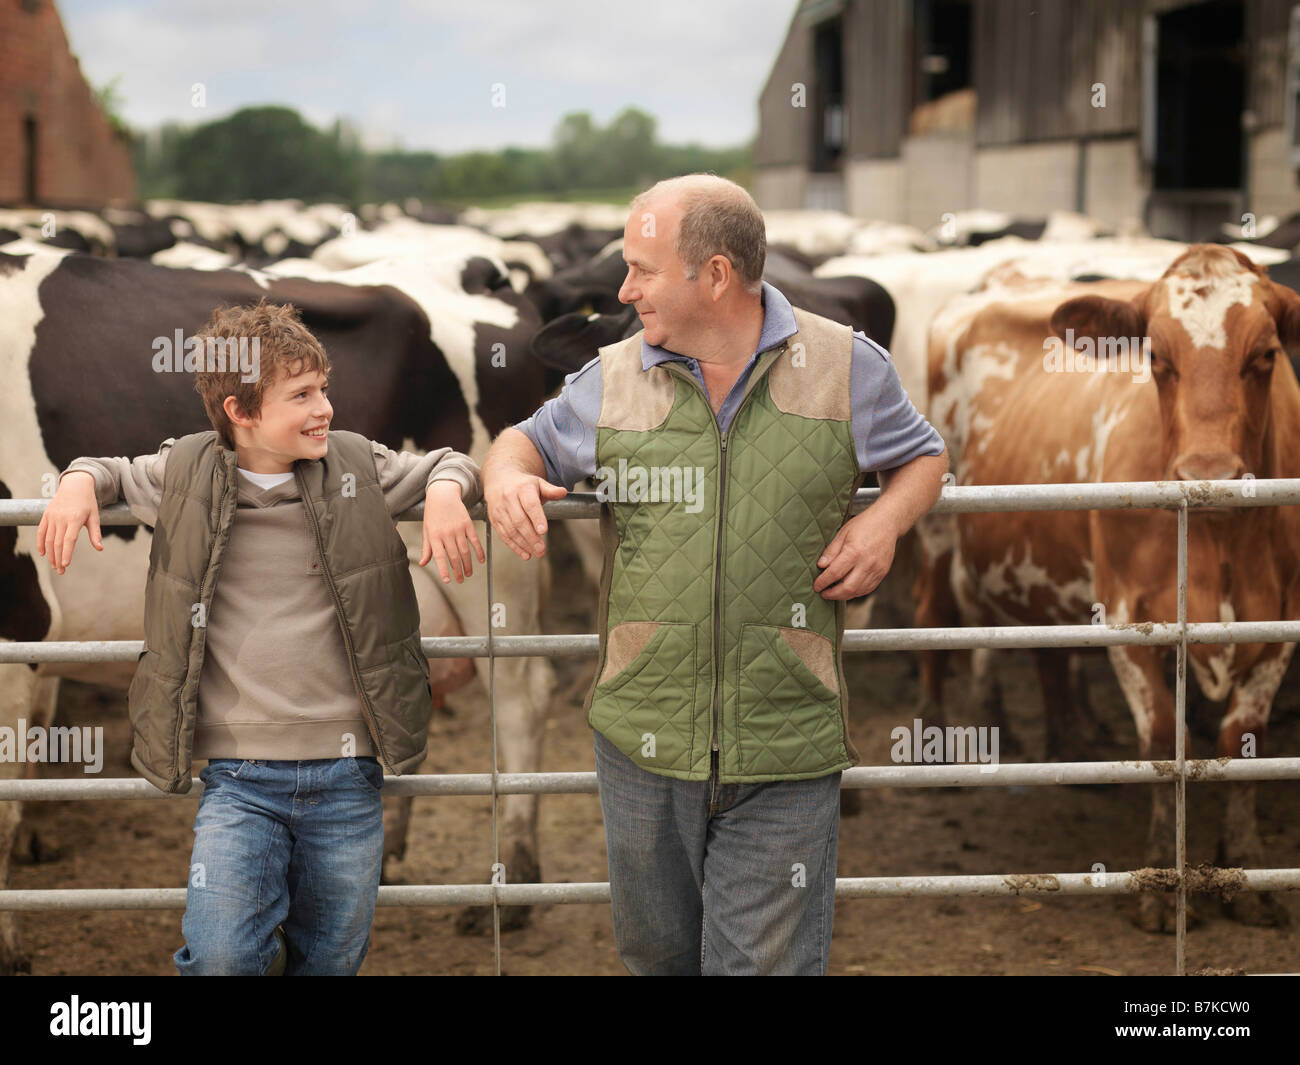 Farmer And Son With Cows Stock Photo